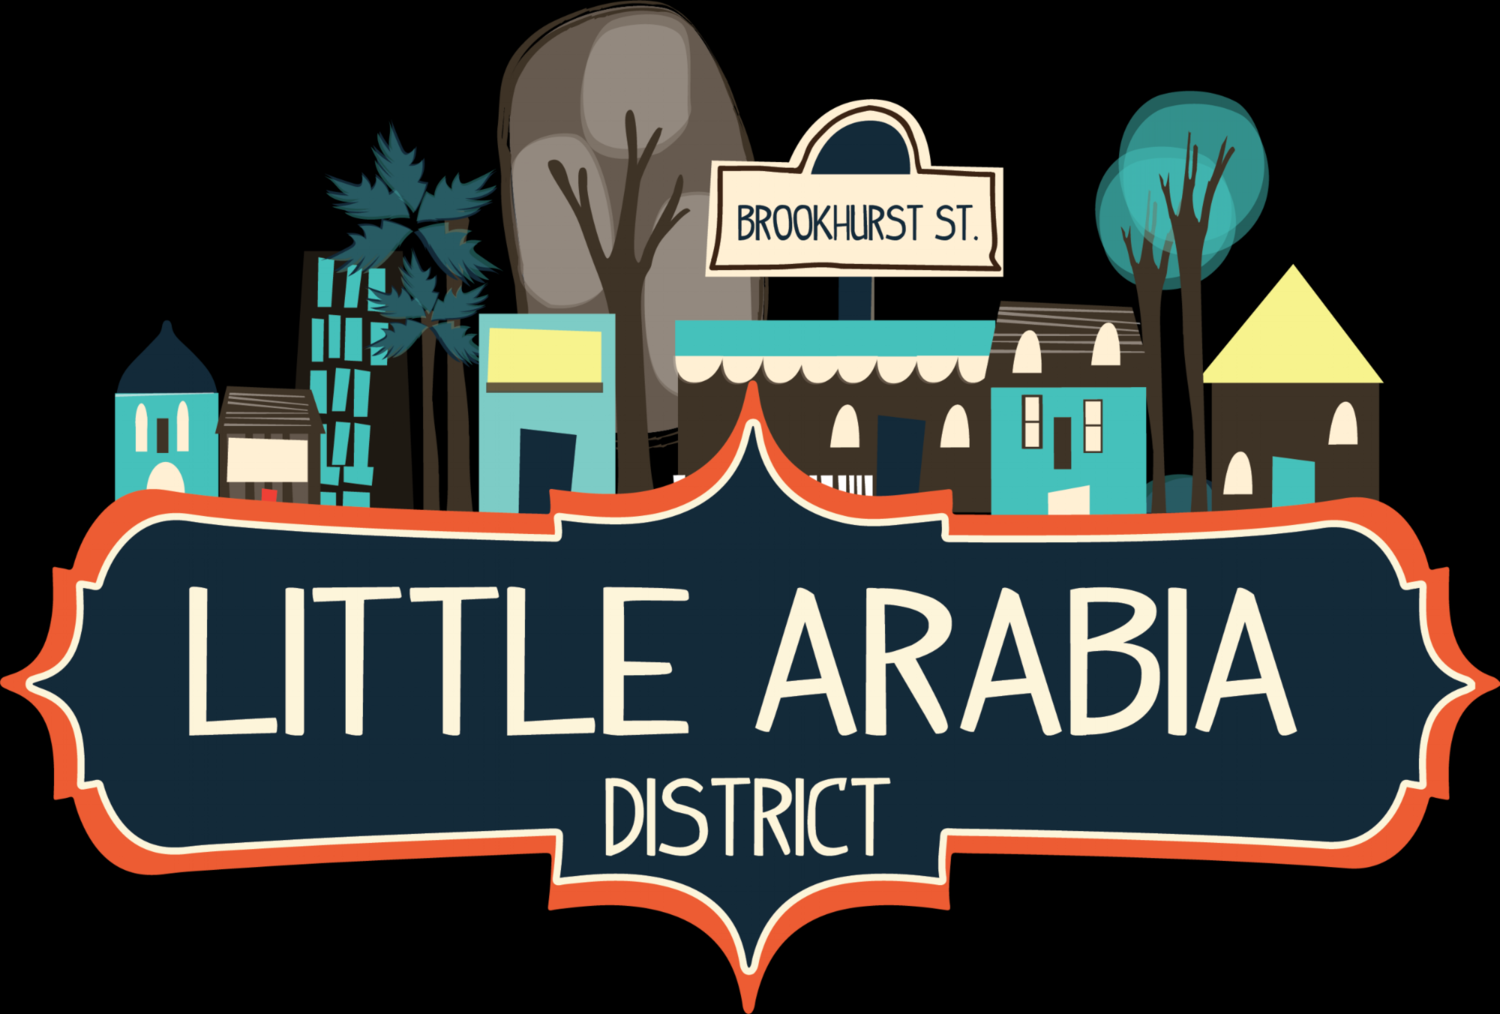 Little Arabia District